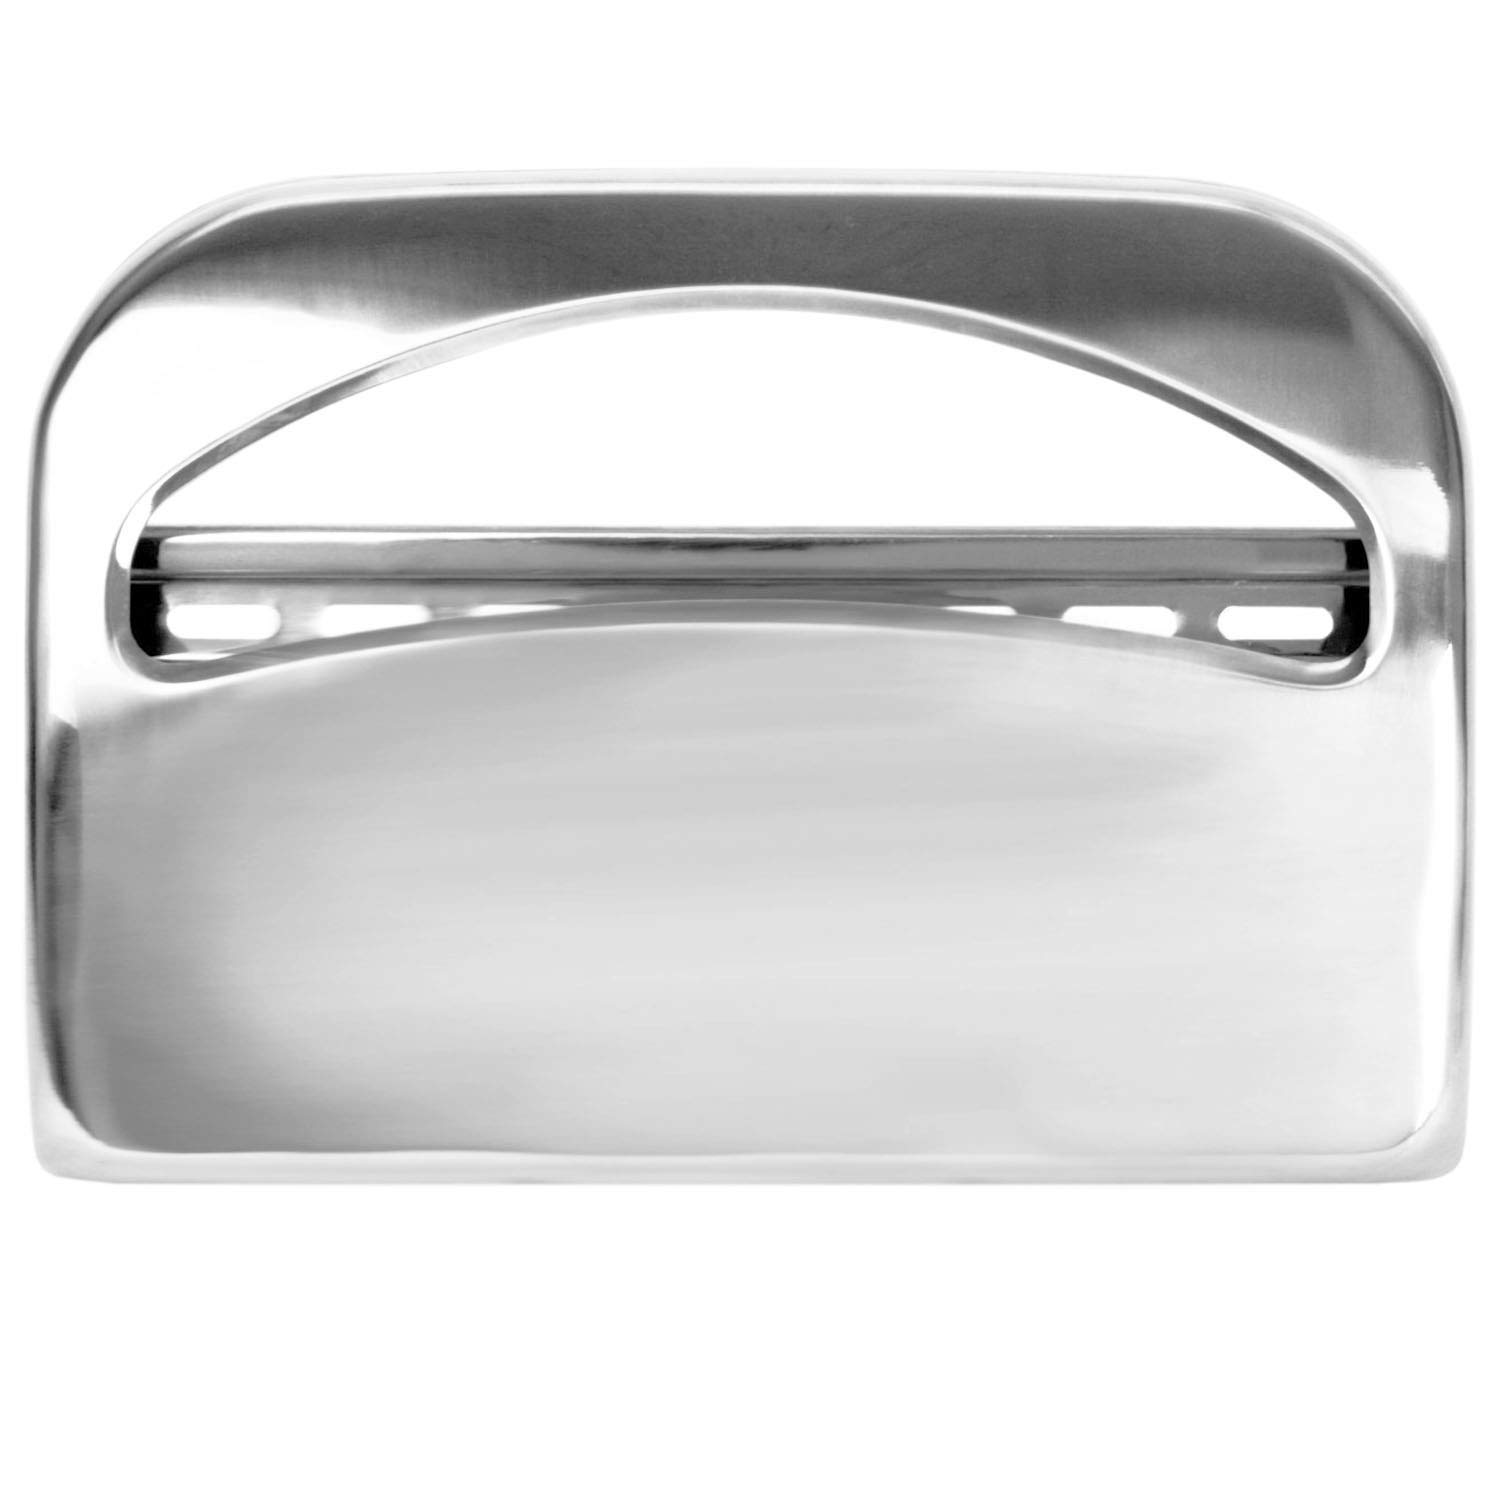 Tiger Chef Silver Toilet Seat Cover Dispenser with 1000 Free Toilet Seat Covers - Starter Pack (Chrome) by Tiger Chef